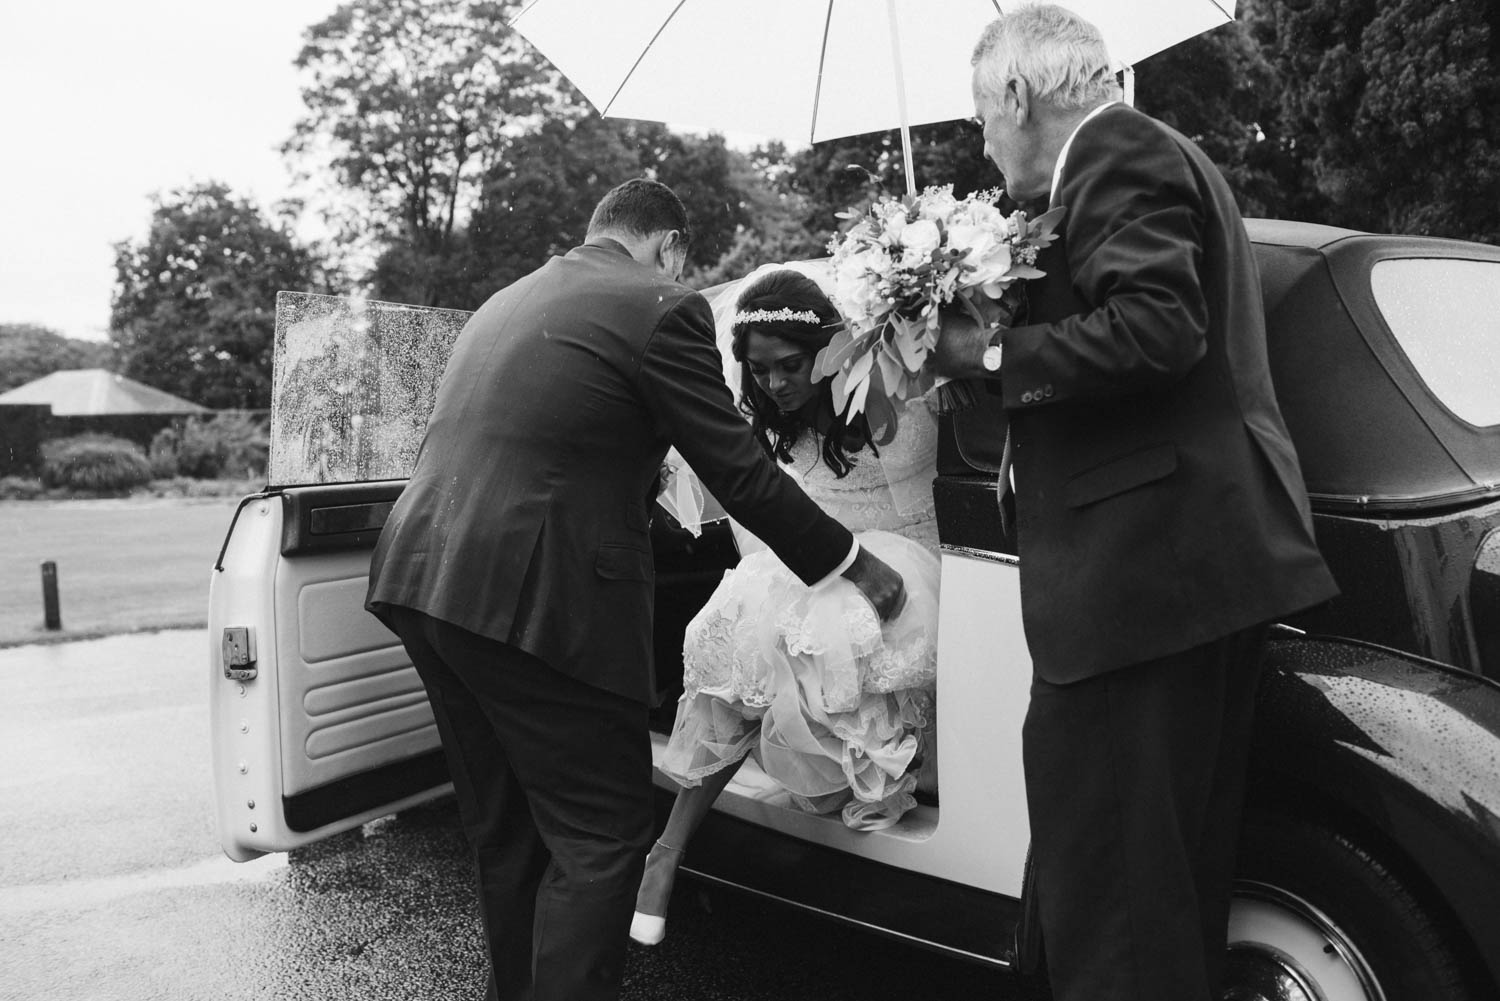 the bride leaving the car in the rain